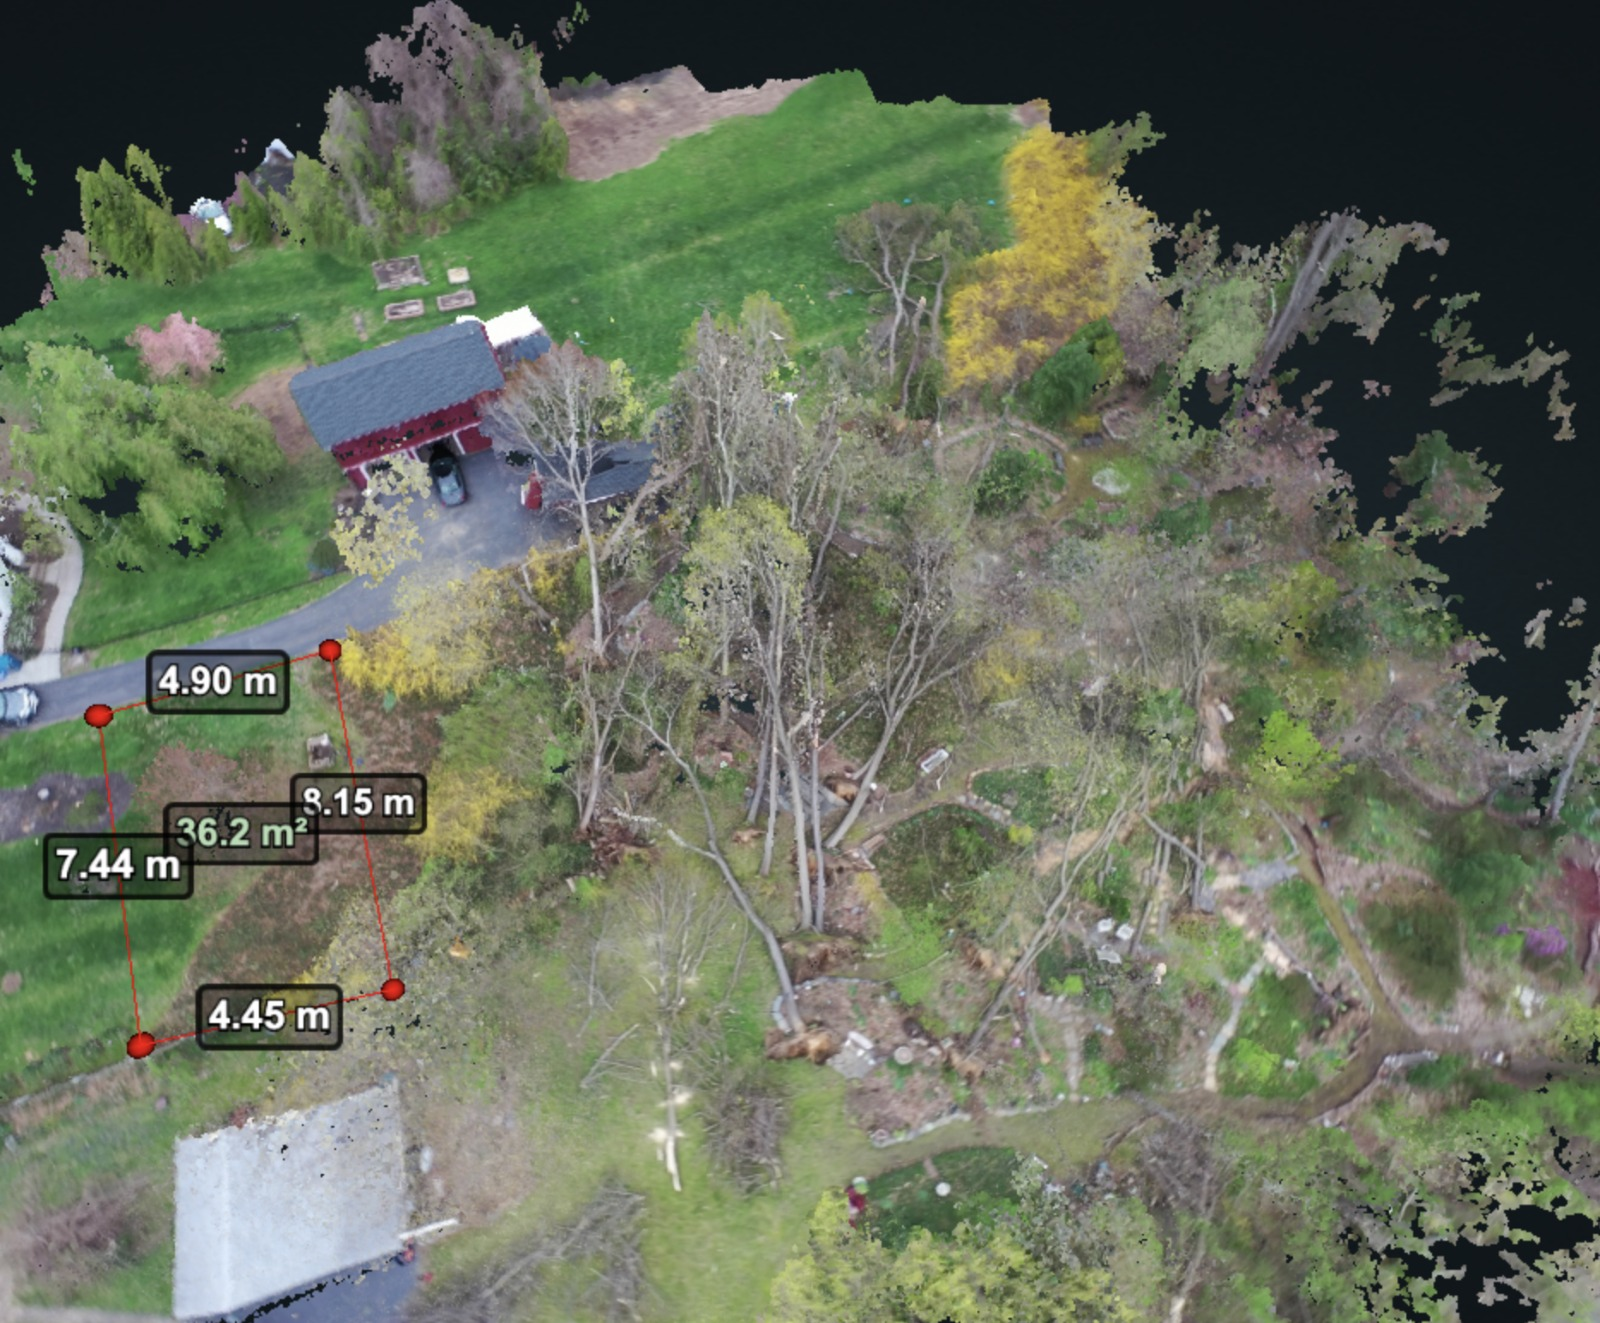 Property damage caused by microburst mapped out by flying SkyeBrowse